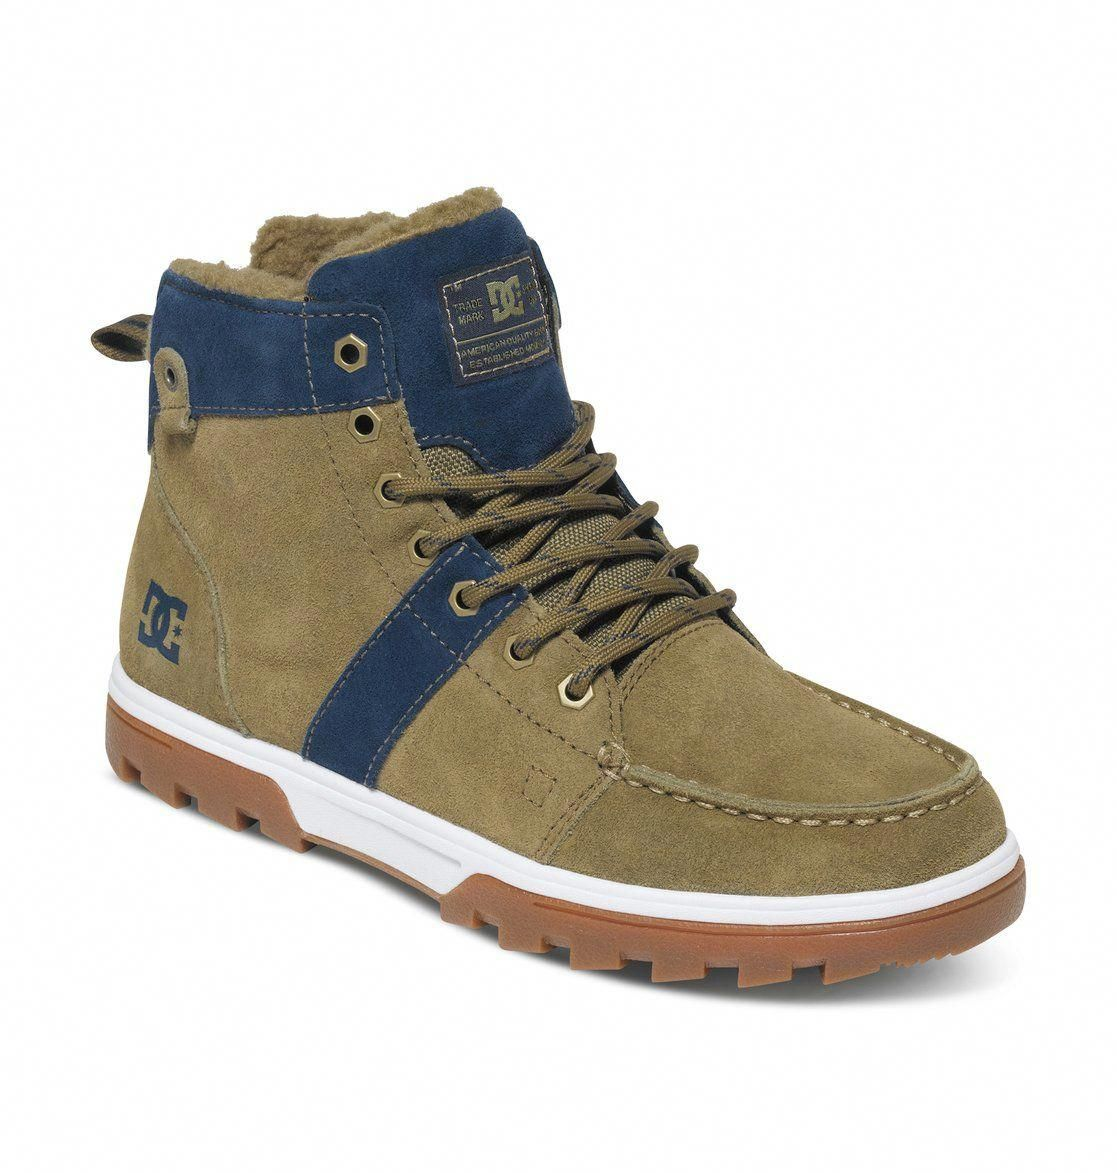 Boots, Hiking boots, Dc shoes